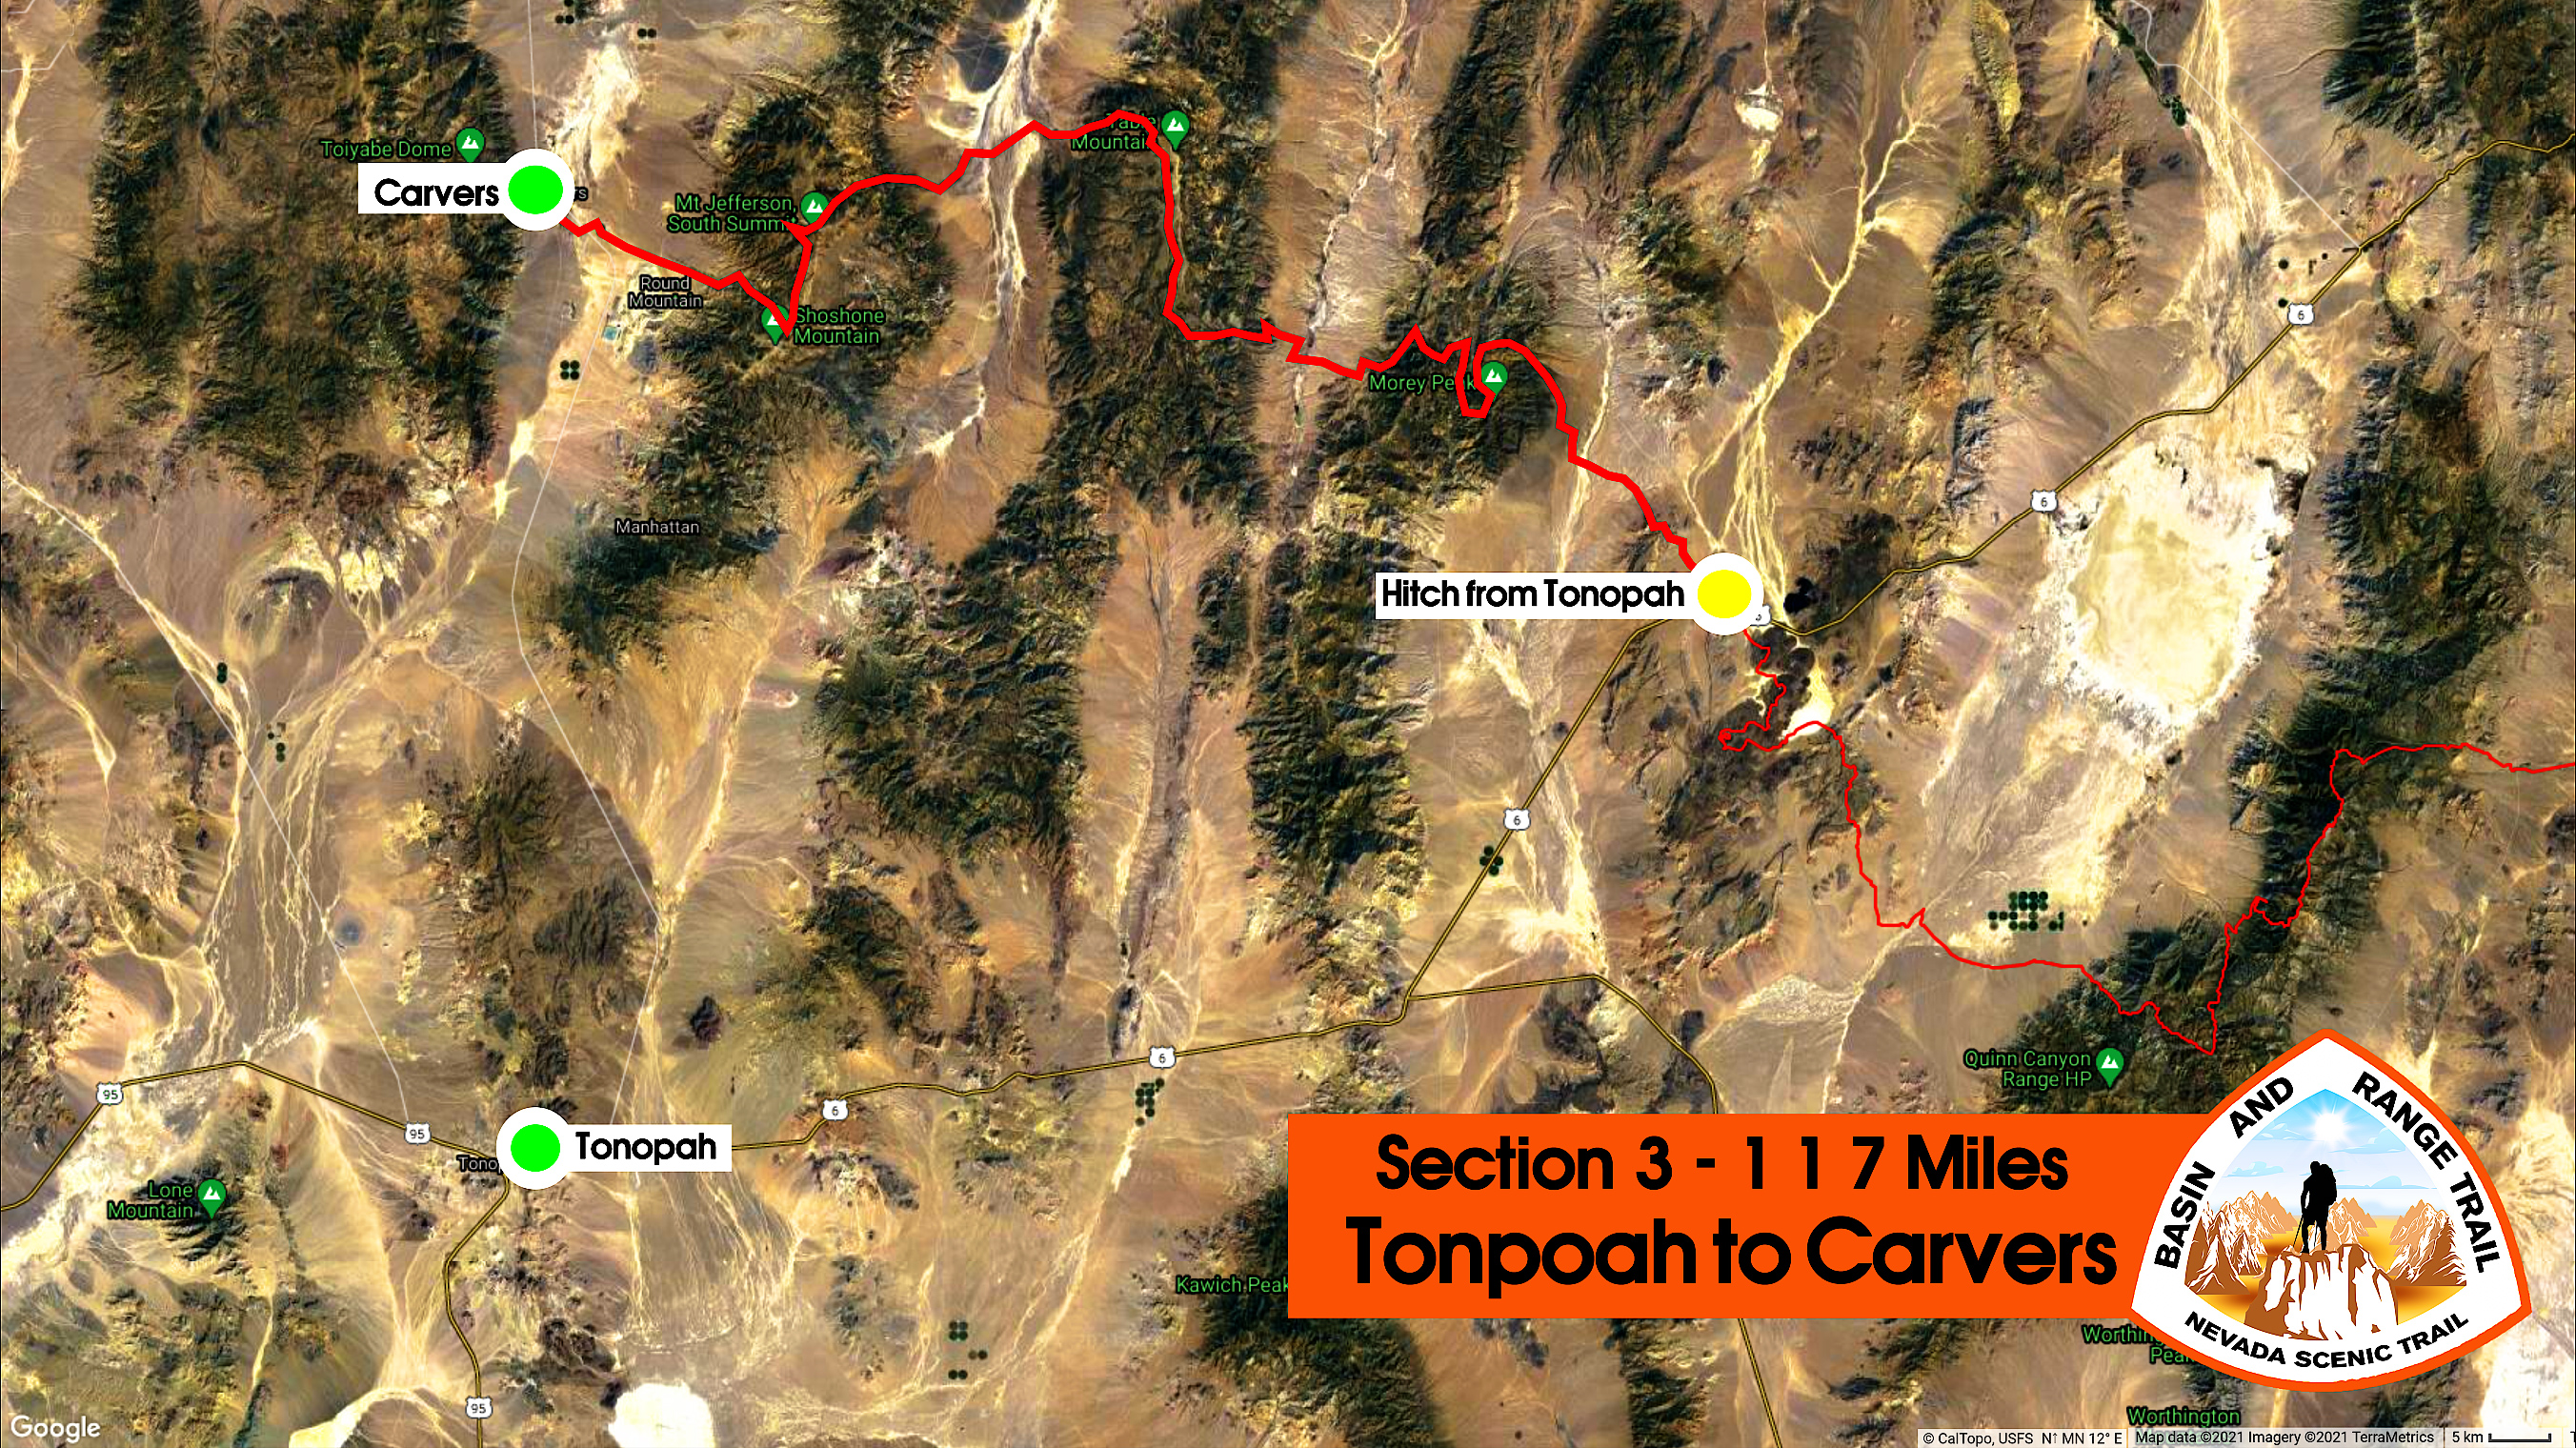 section 3 basin and range trail overview map